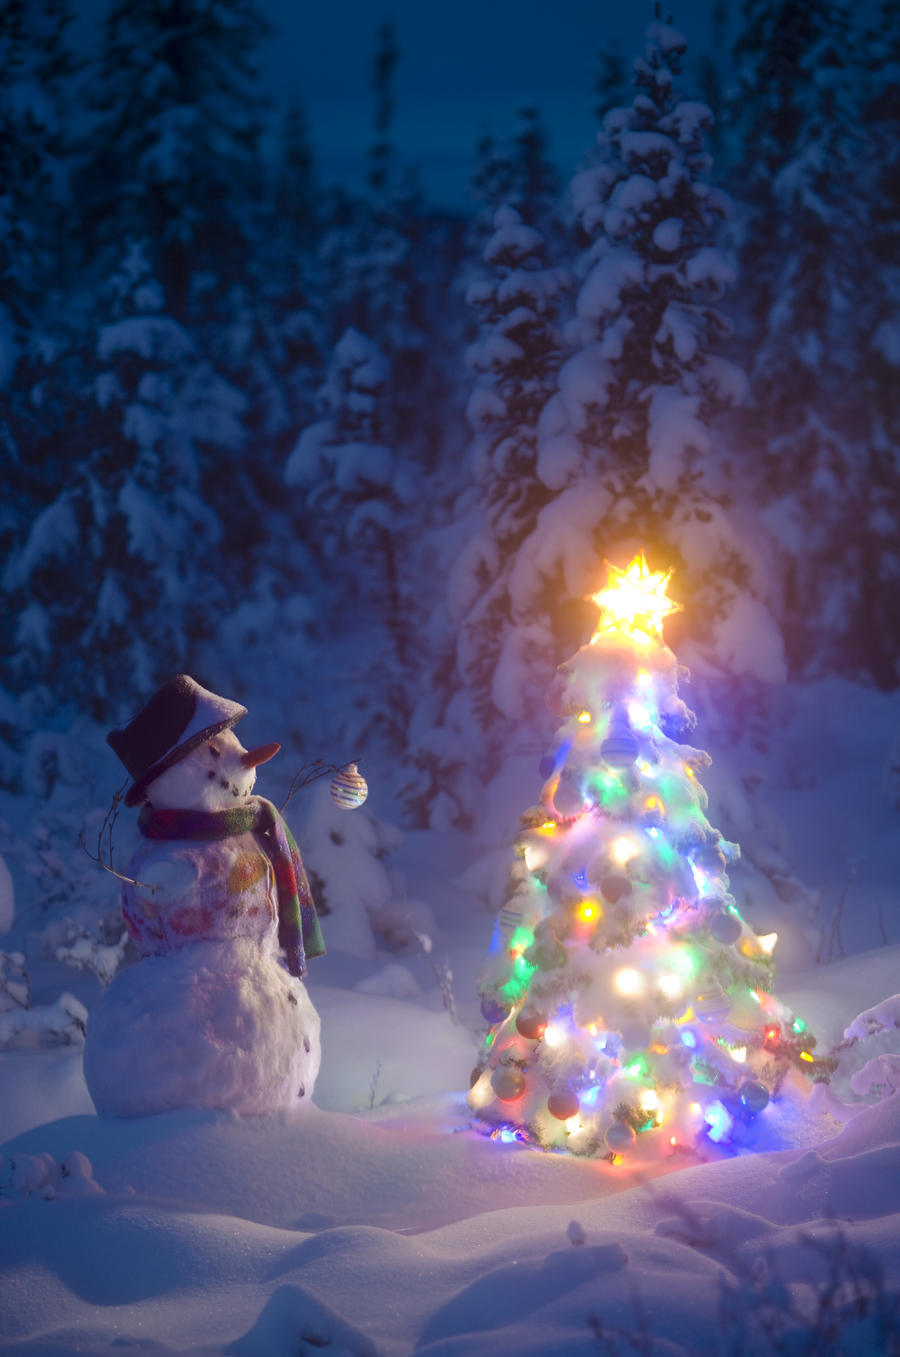 snowman stands in a snowcovered spruce forest next to a decorated christmas tree in wintertime - Snow Covered Christmas Trees